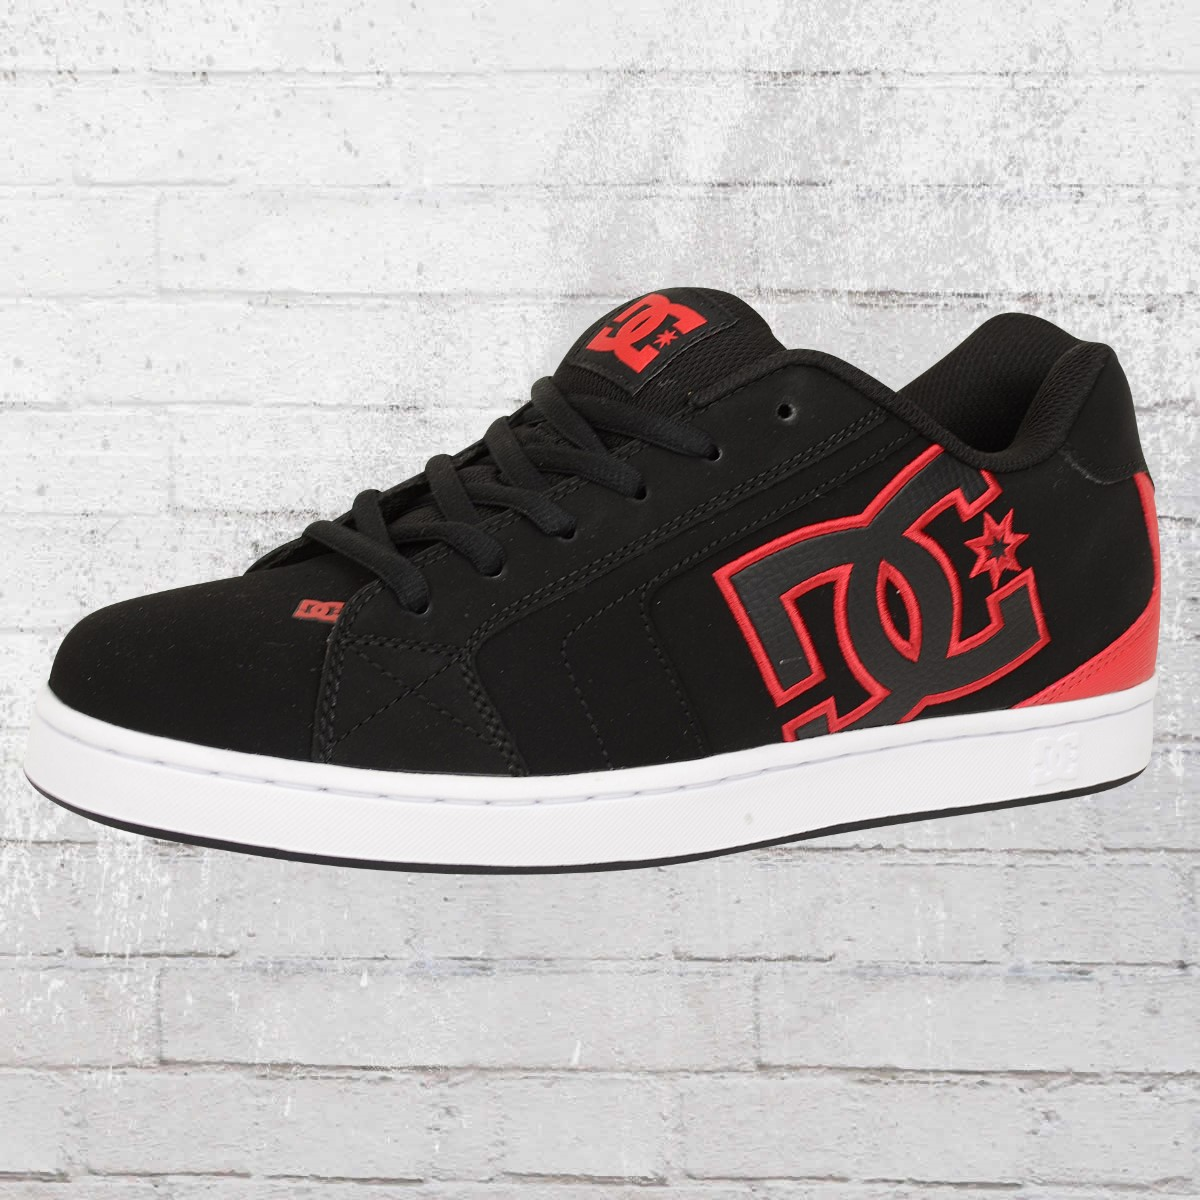 new arrival 2cf63 577a0 Order now | DC Shoes Male Sneaker Net black red